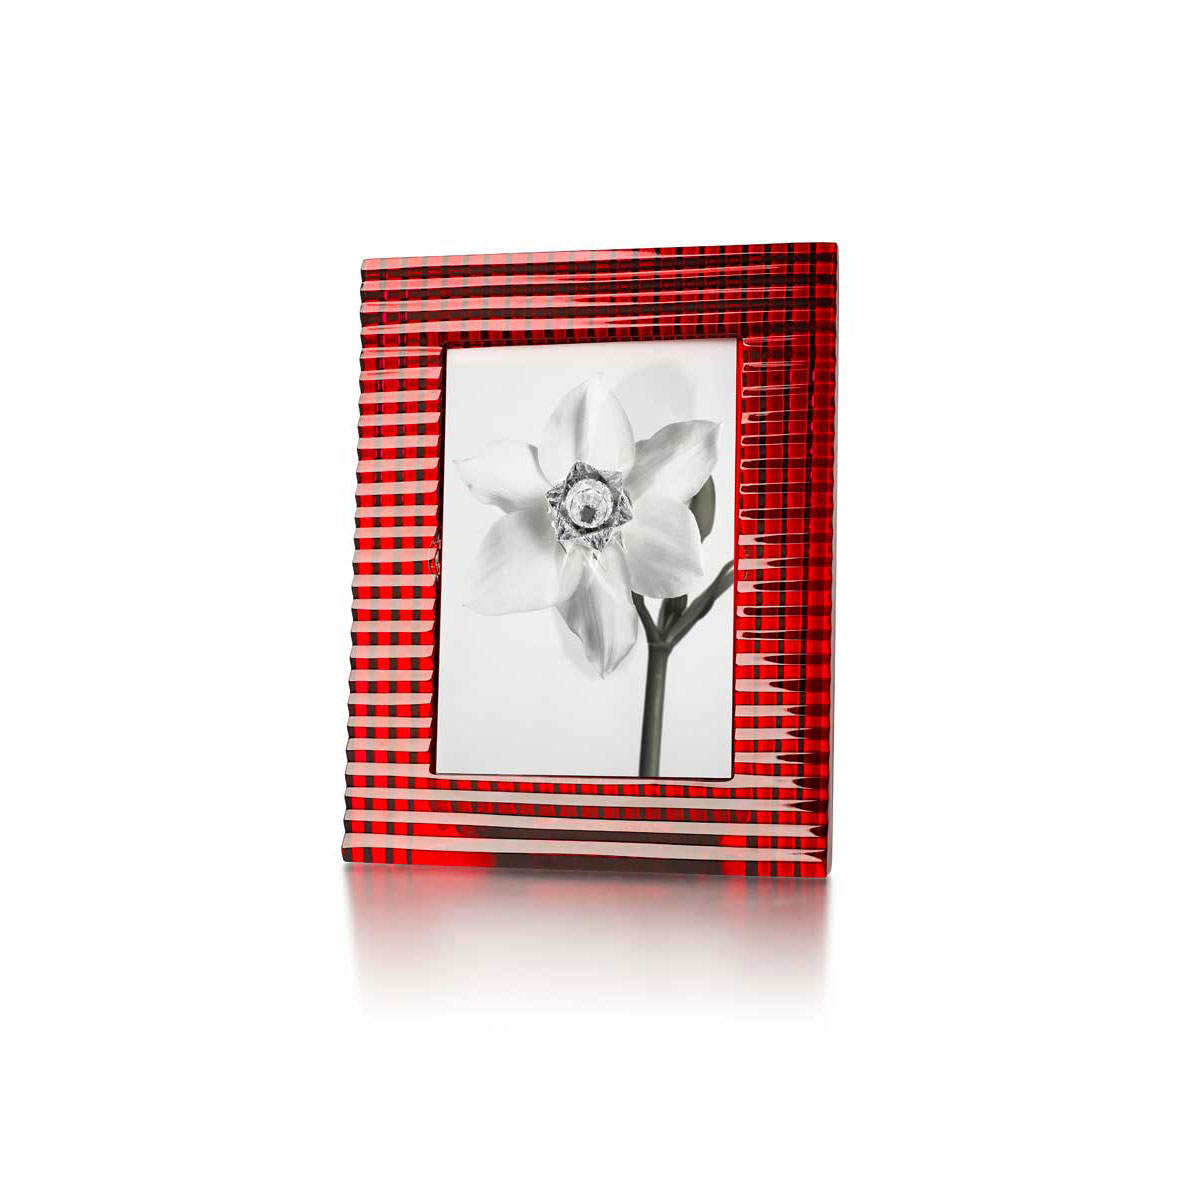 "Baccarat Crystal, Eye 5x7"" Picture Frame, Red"